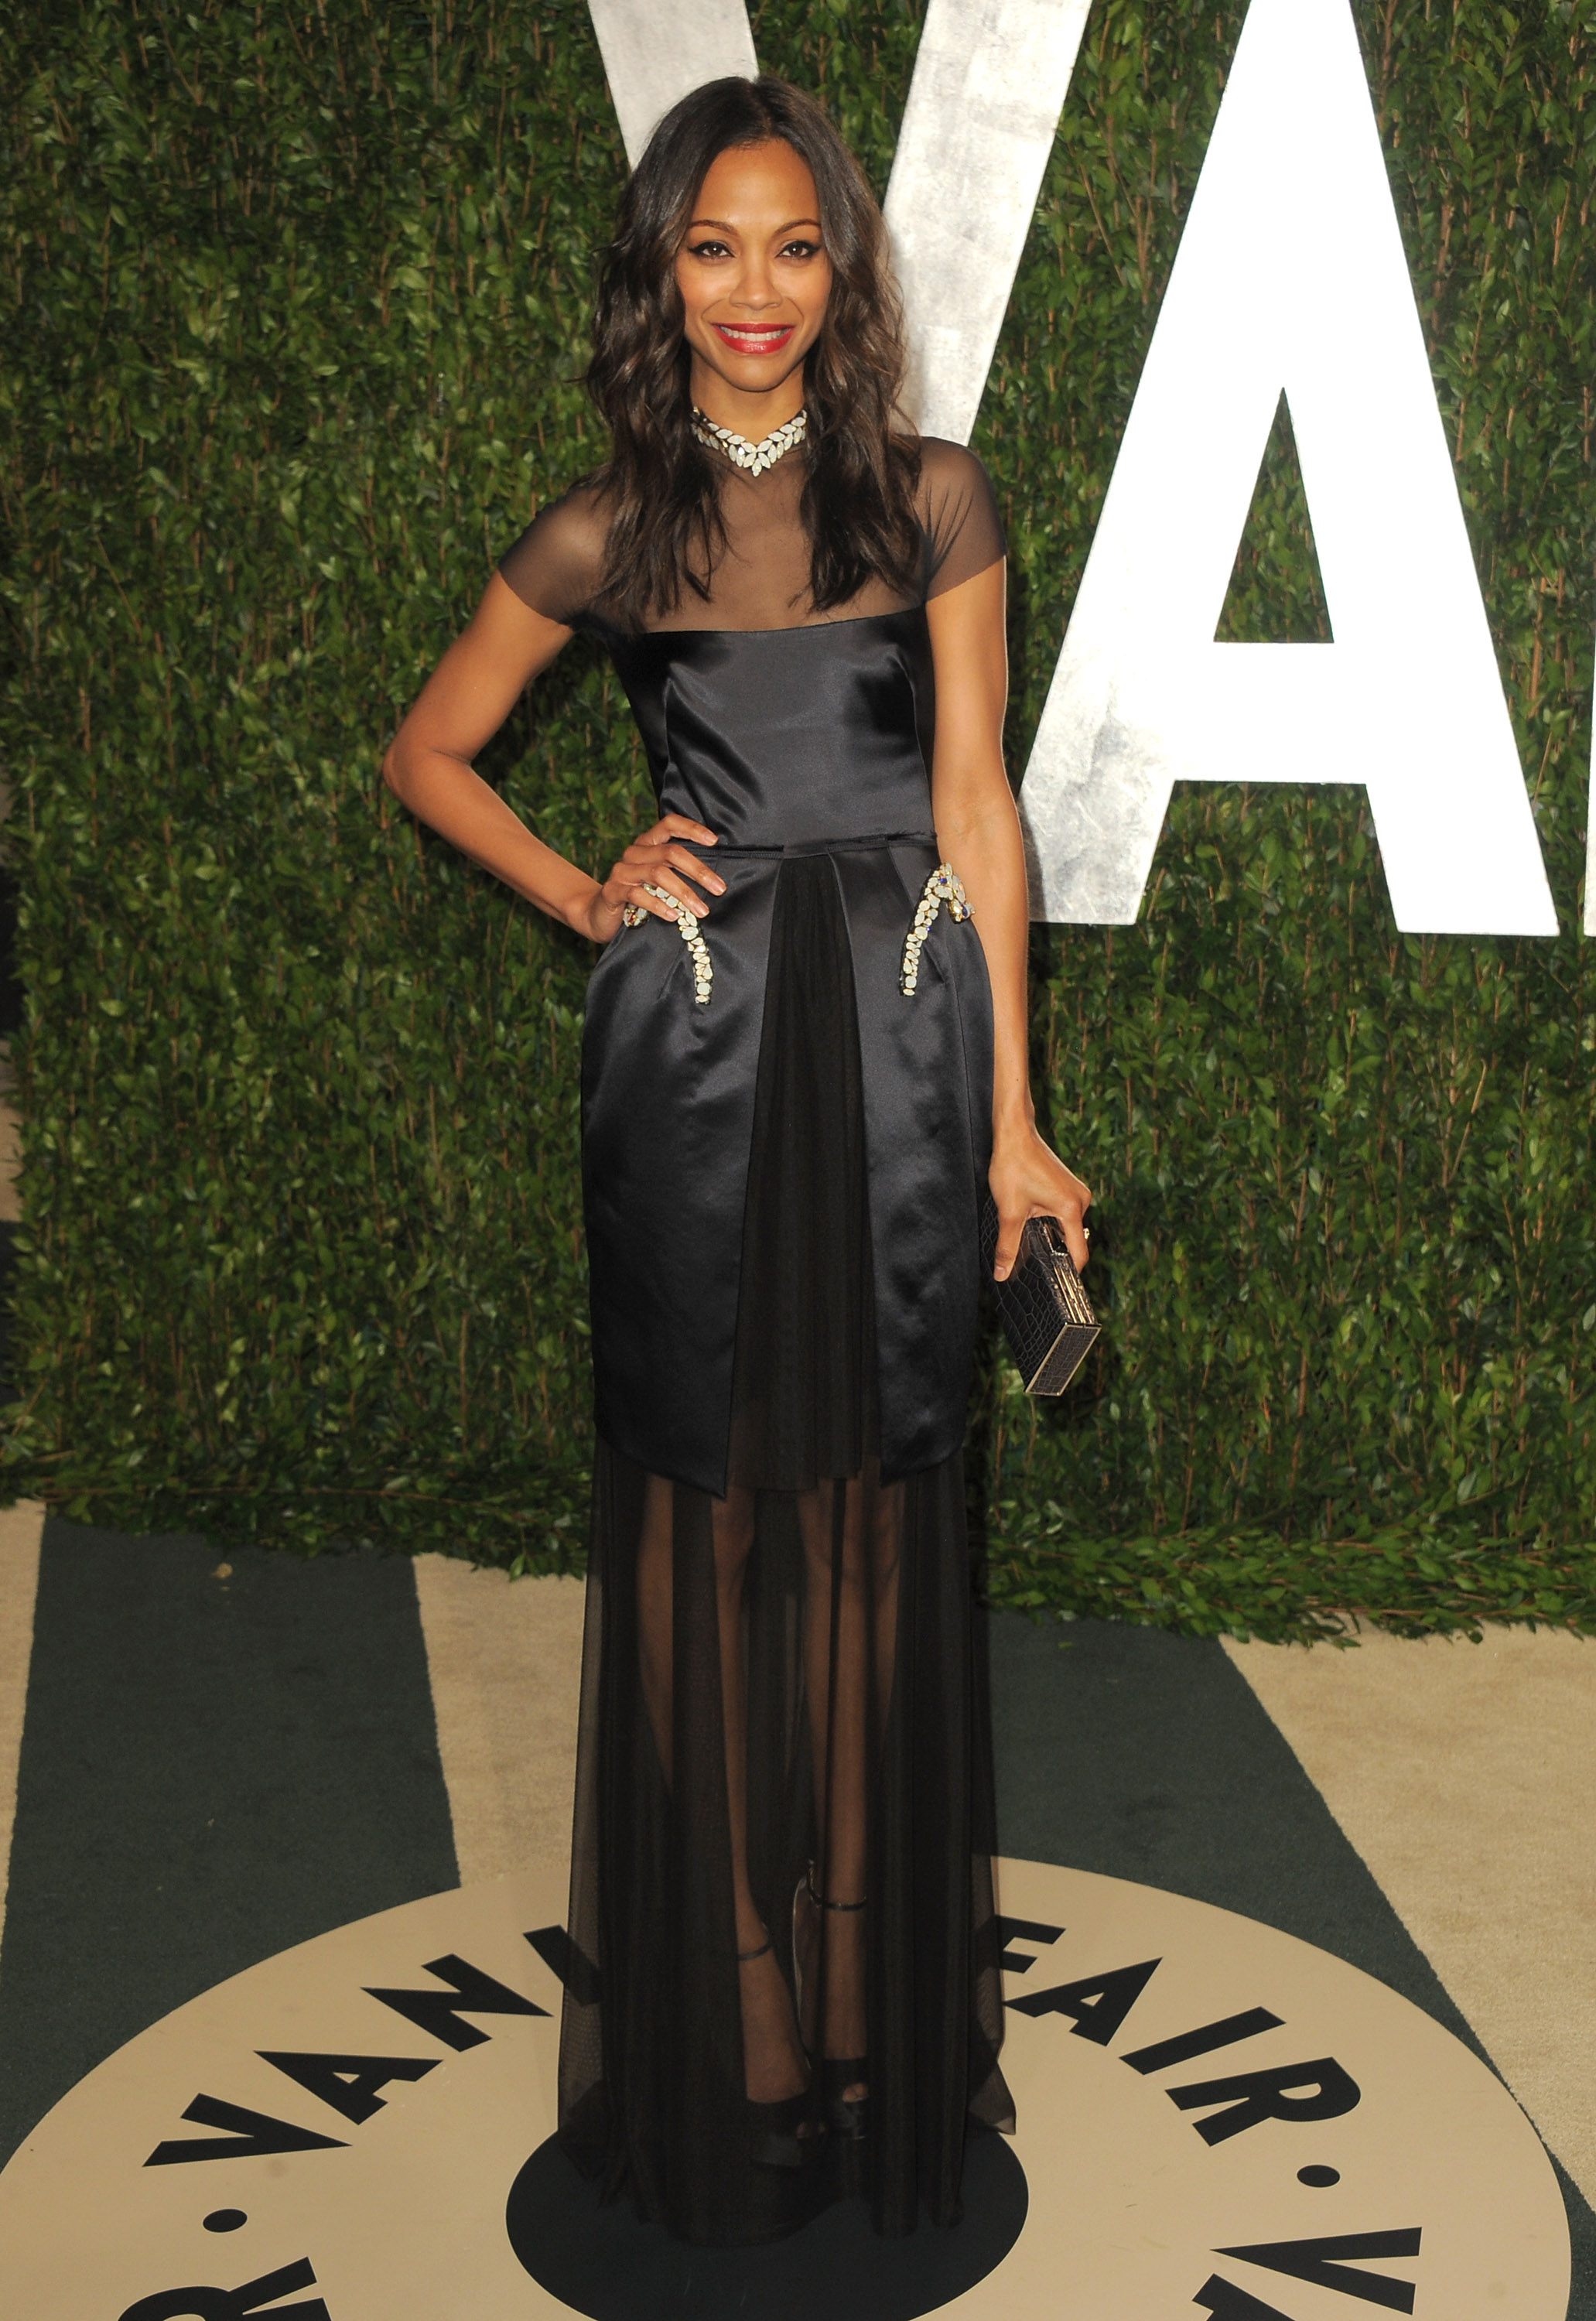 Zoe Saldana at the Vanity Fair Oscar party